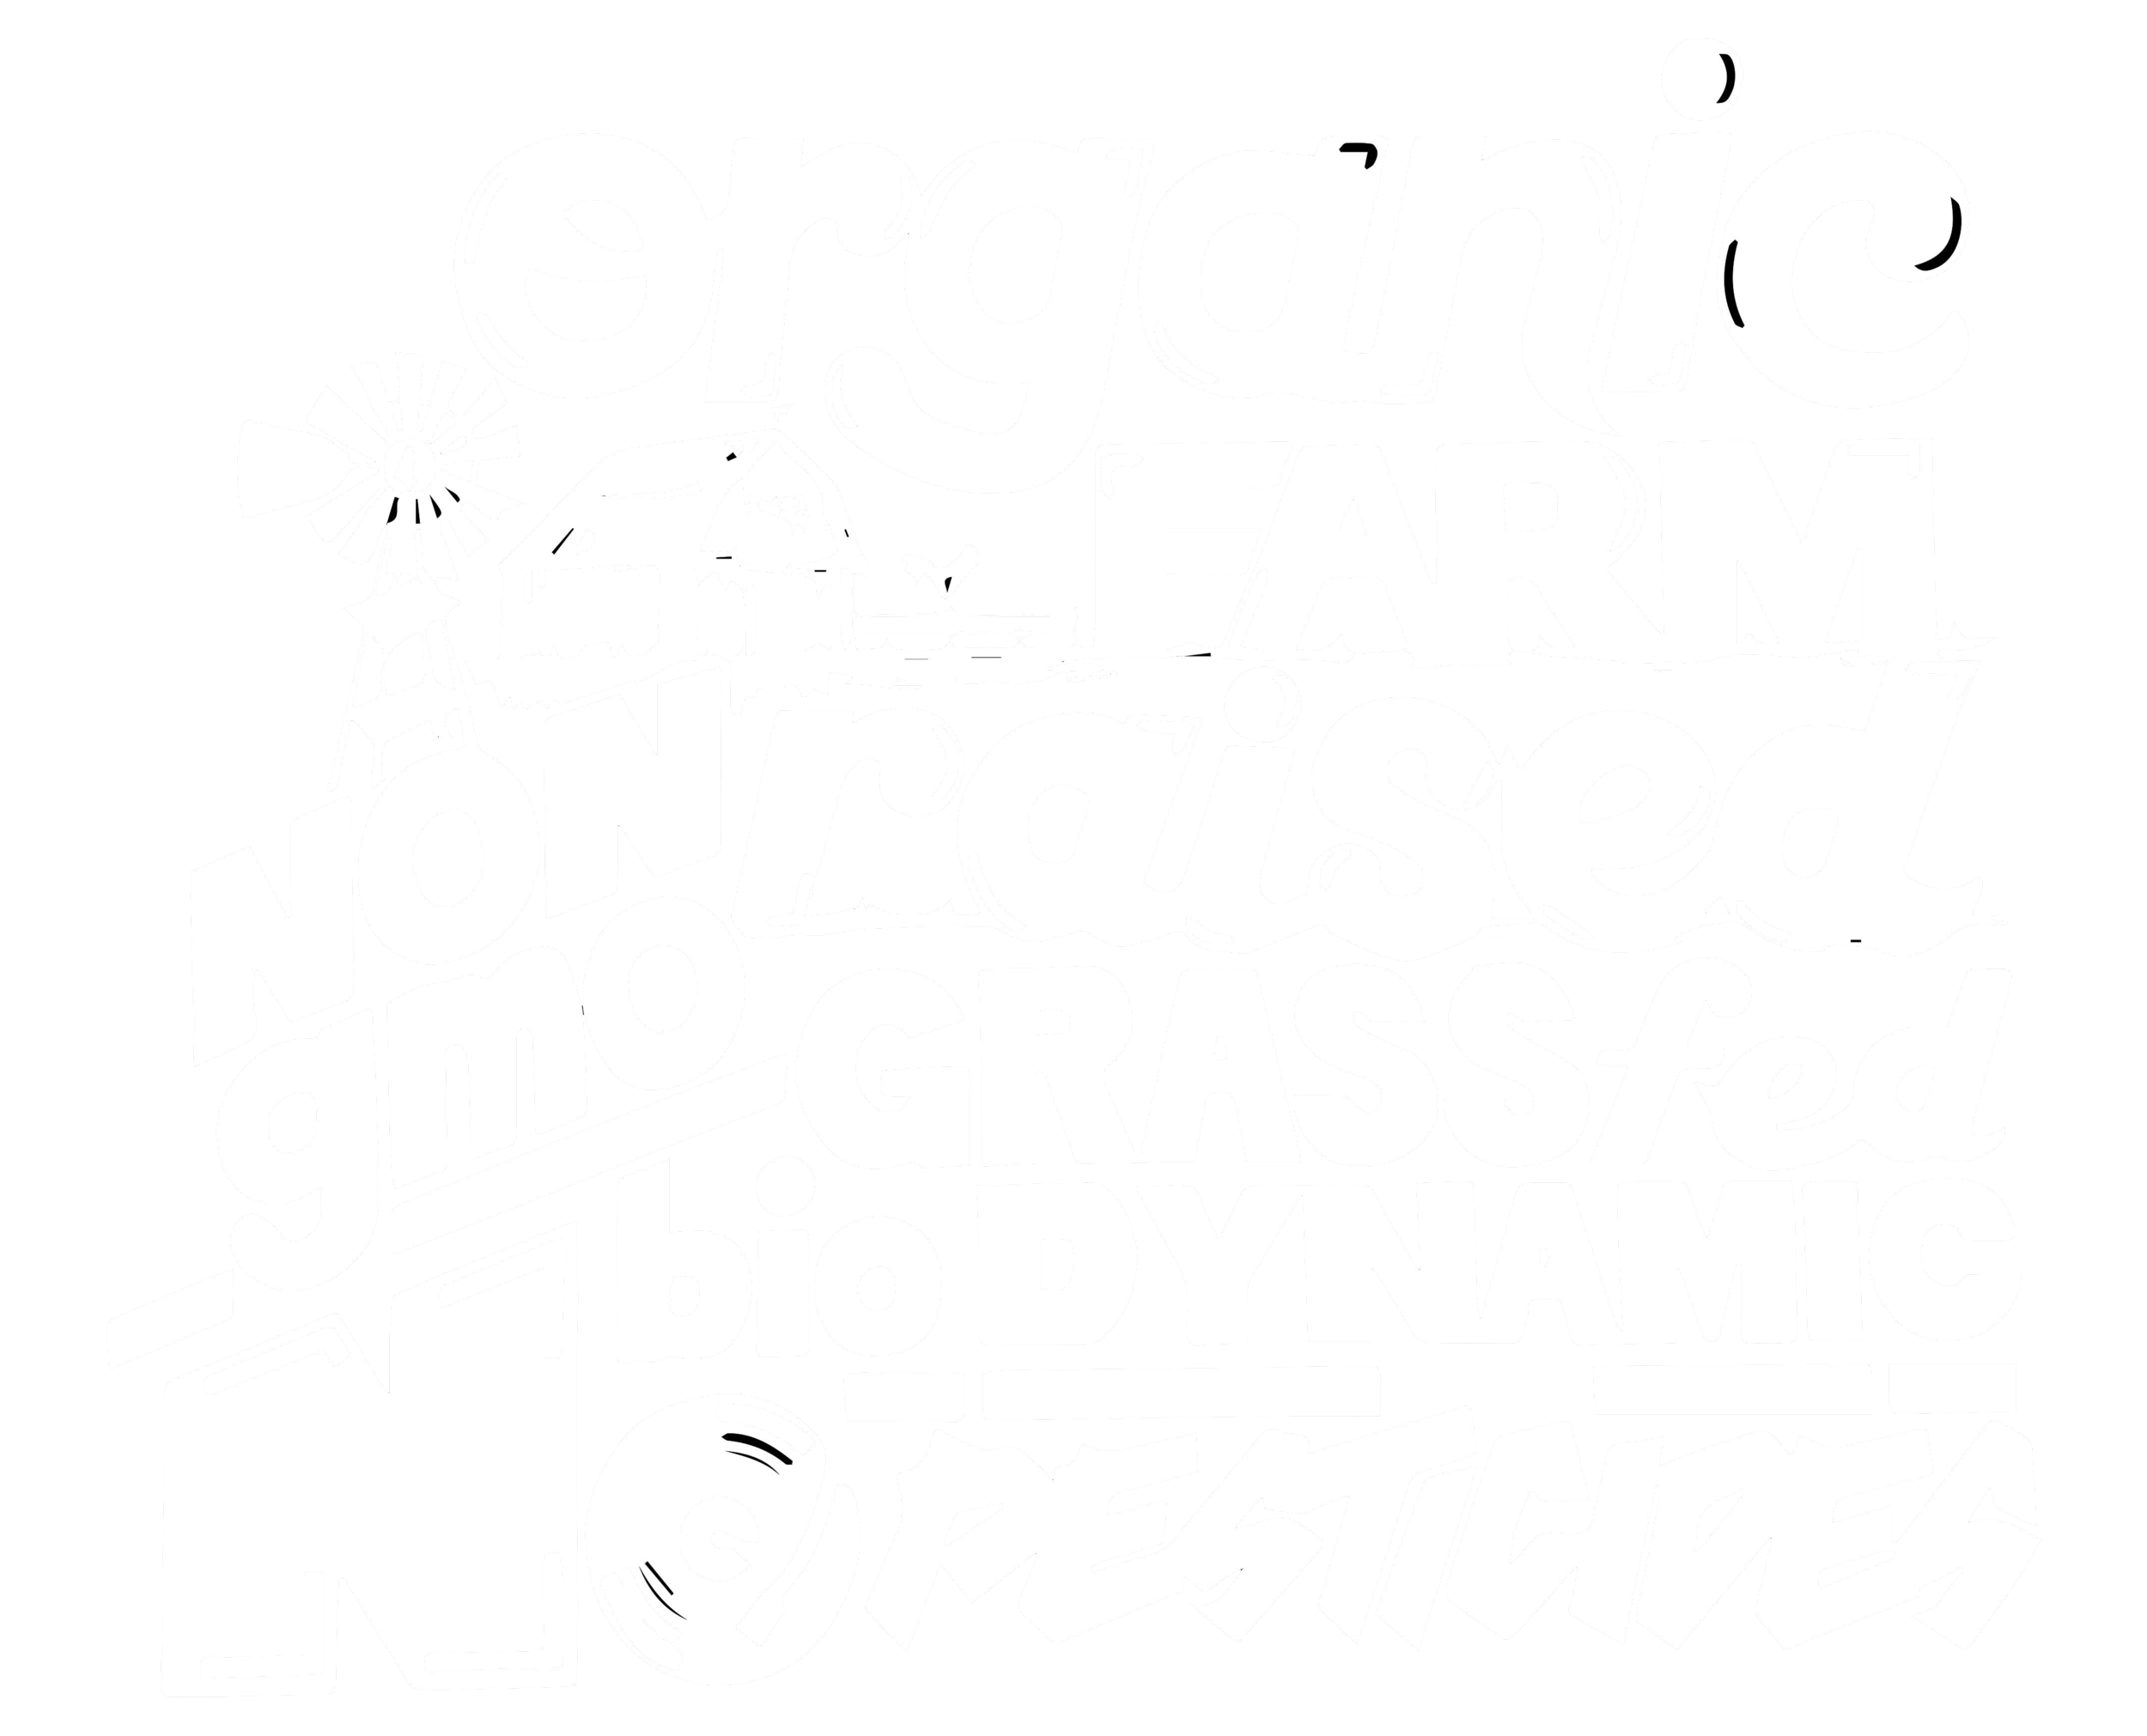 organic, farm raised, non-gmo, grass-fed, biodynamic, no pesticides